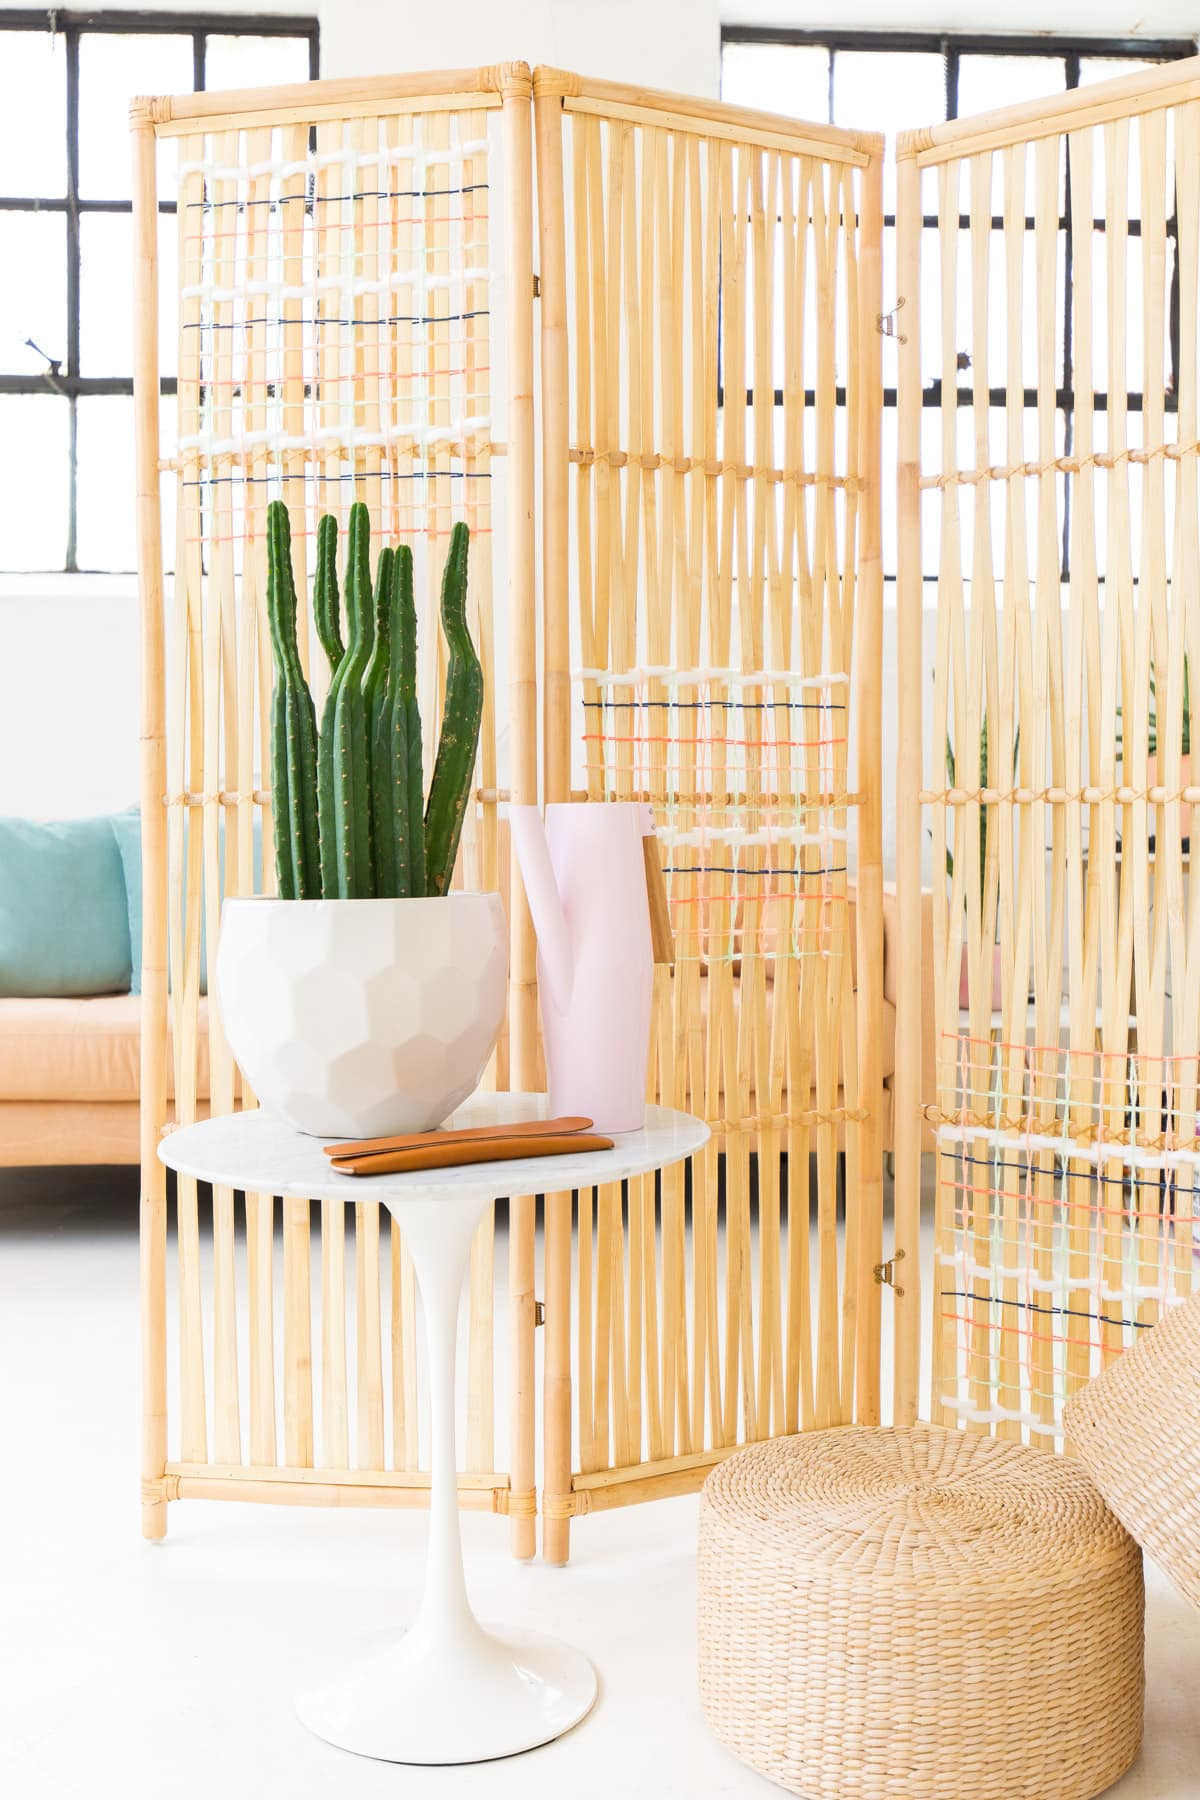 diy ikea hack woven room divider sugar cloth diy. Black Bedroom Furniture Sets. Home Design Ideas